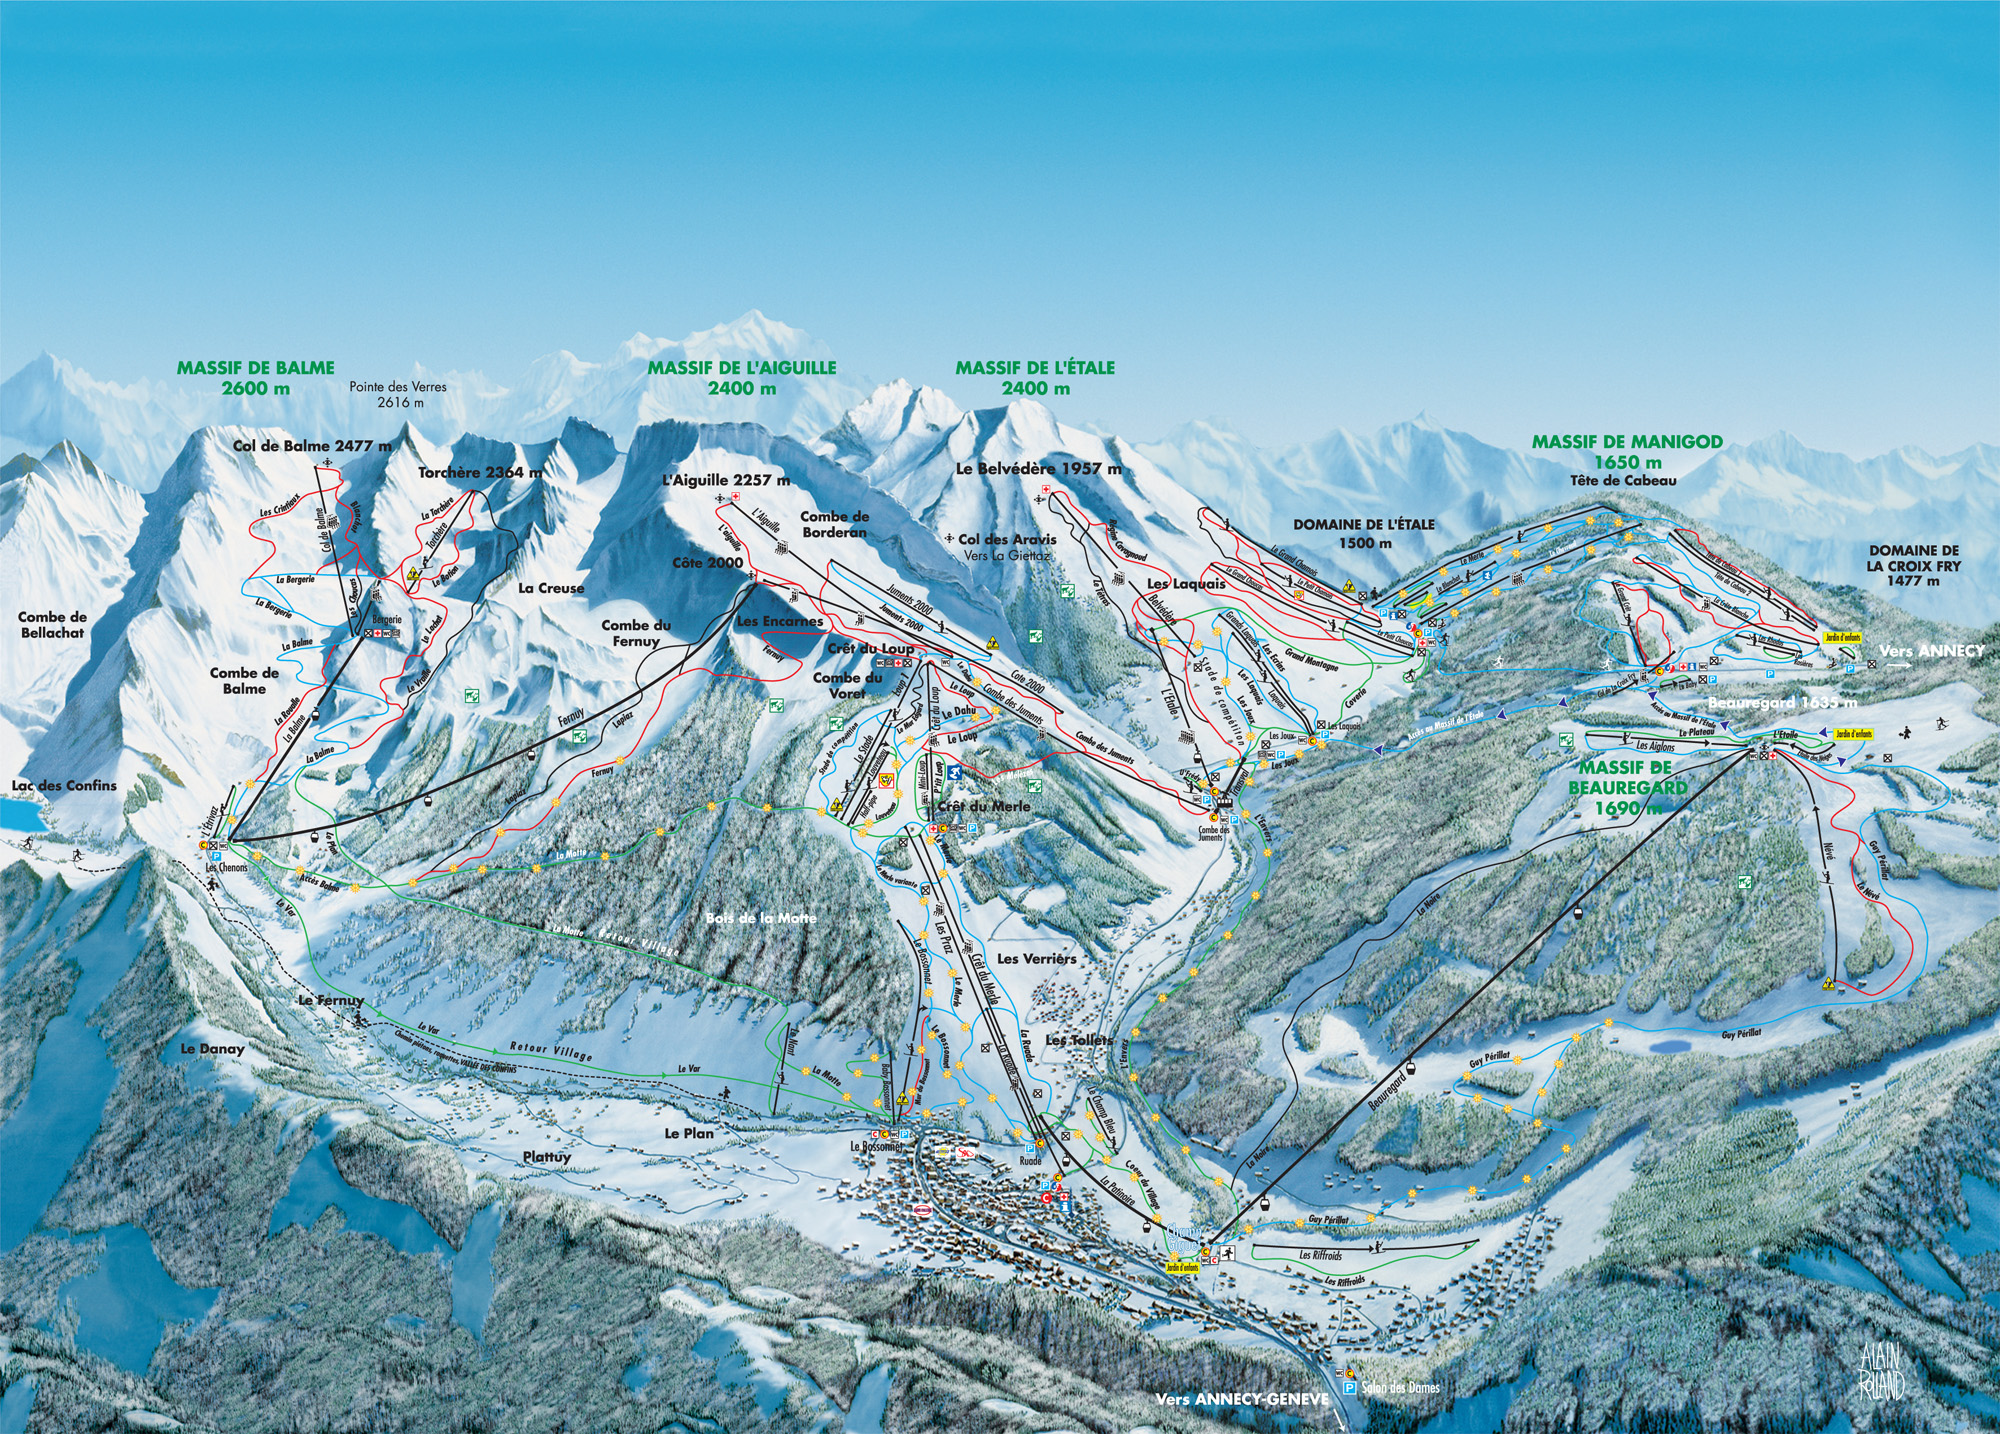 LA CLUSAZ MAP 0 open ski lift WinterSportscom